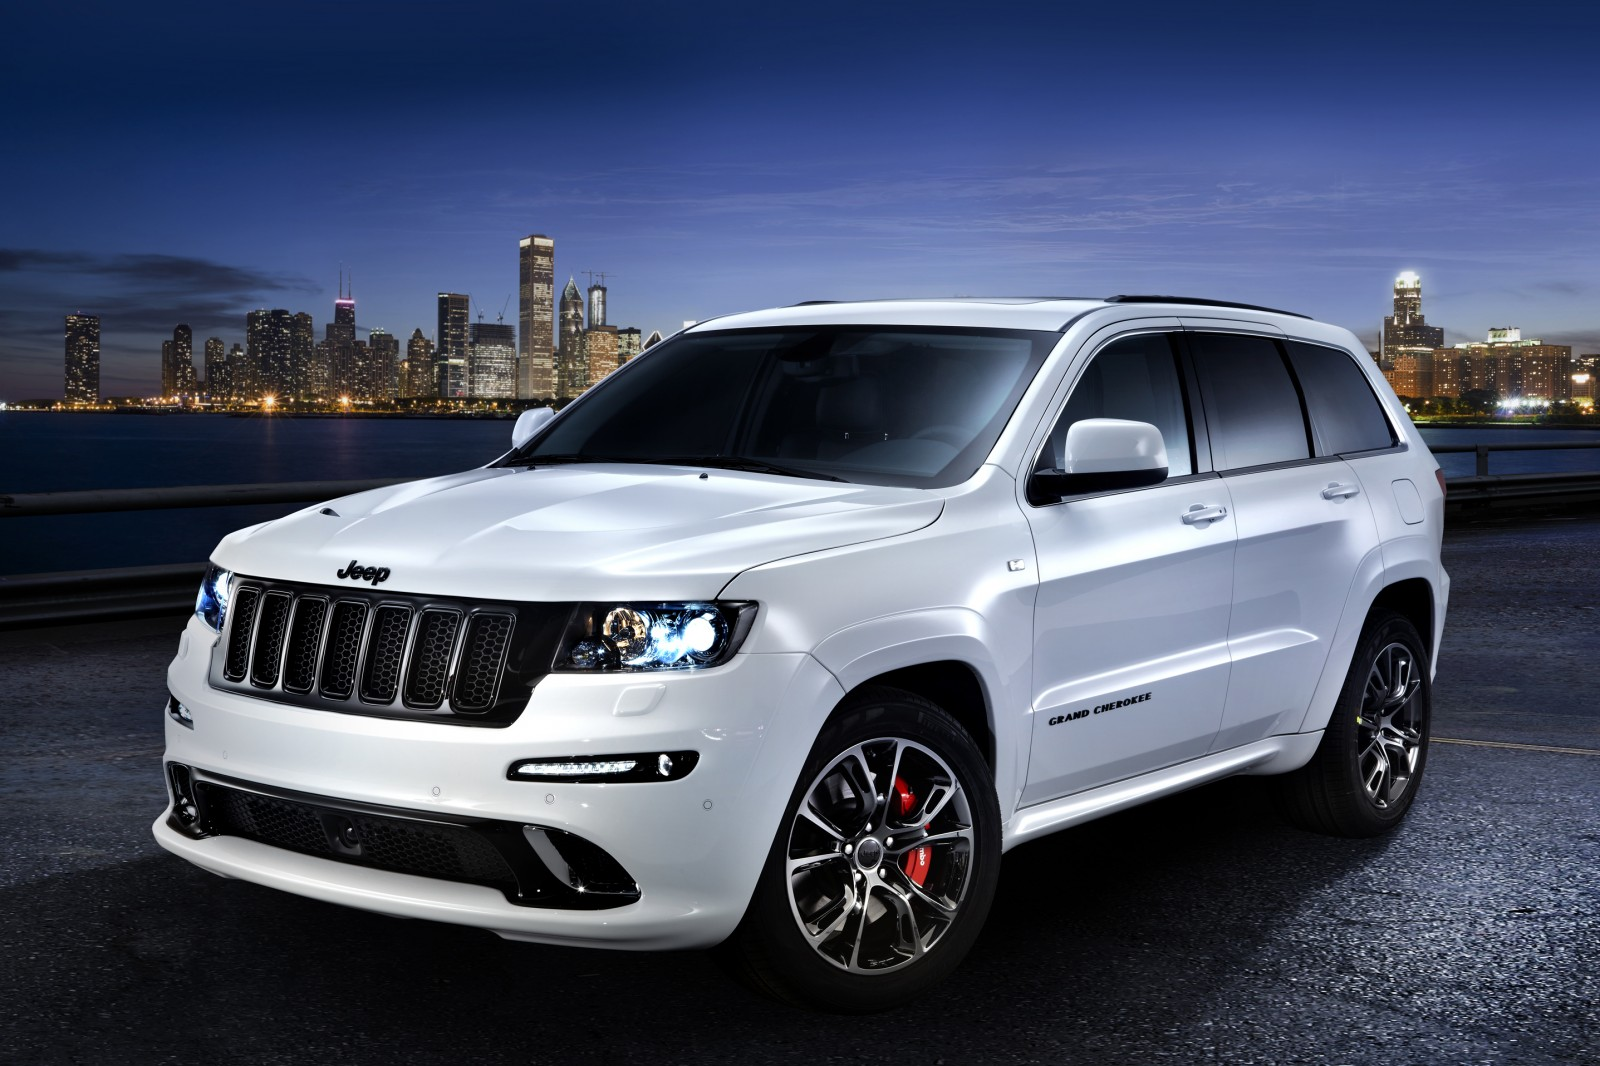 grand cherokee jeep 2013 wallpaper. Cars Review. Best American Auto & Cars Review